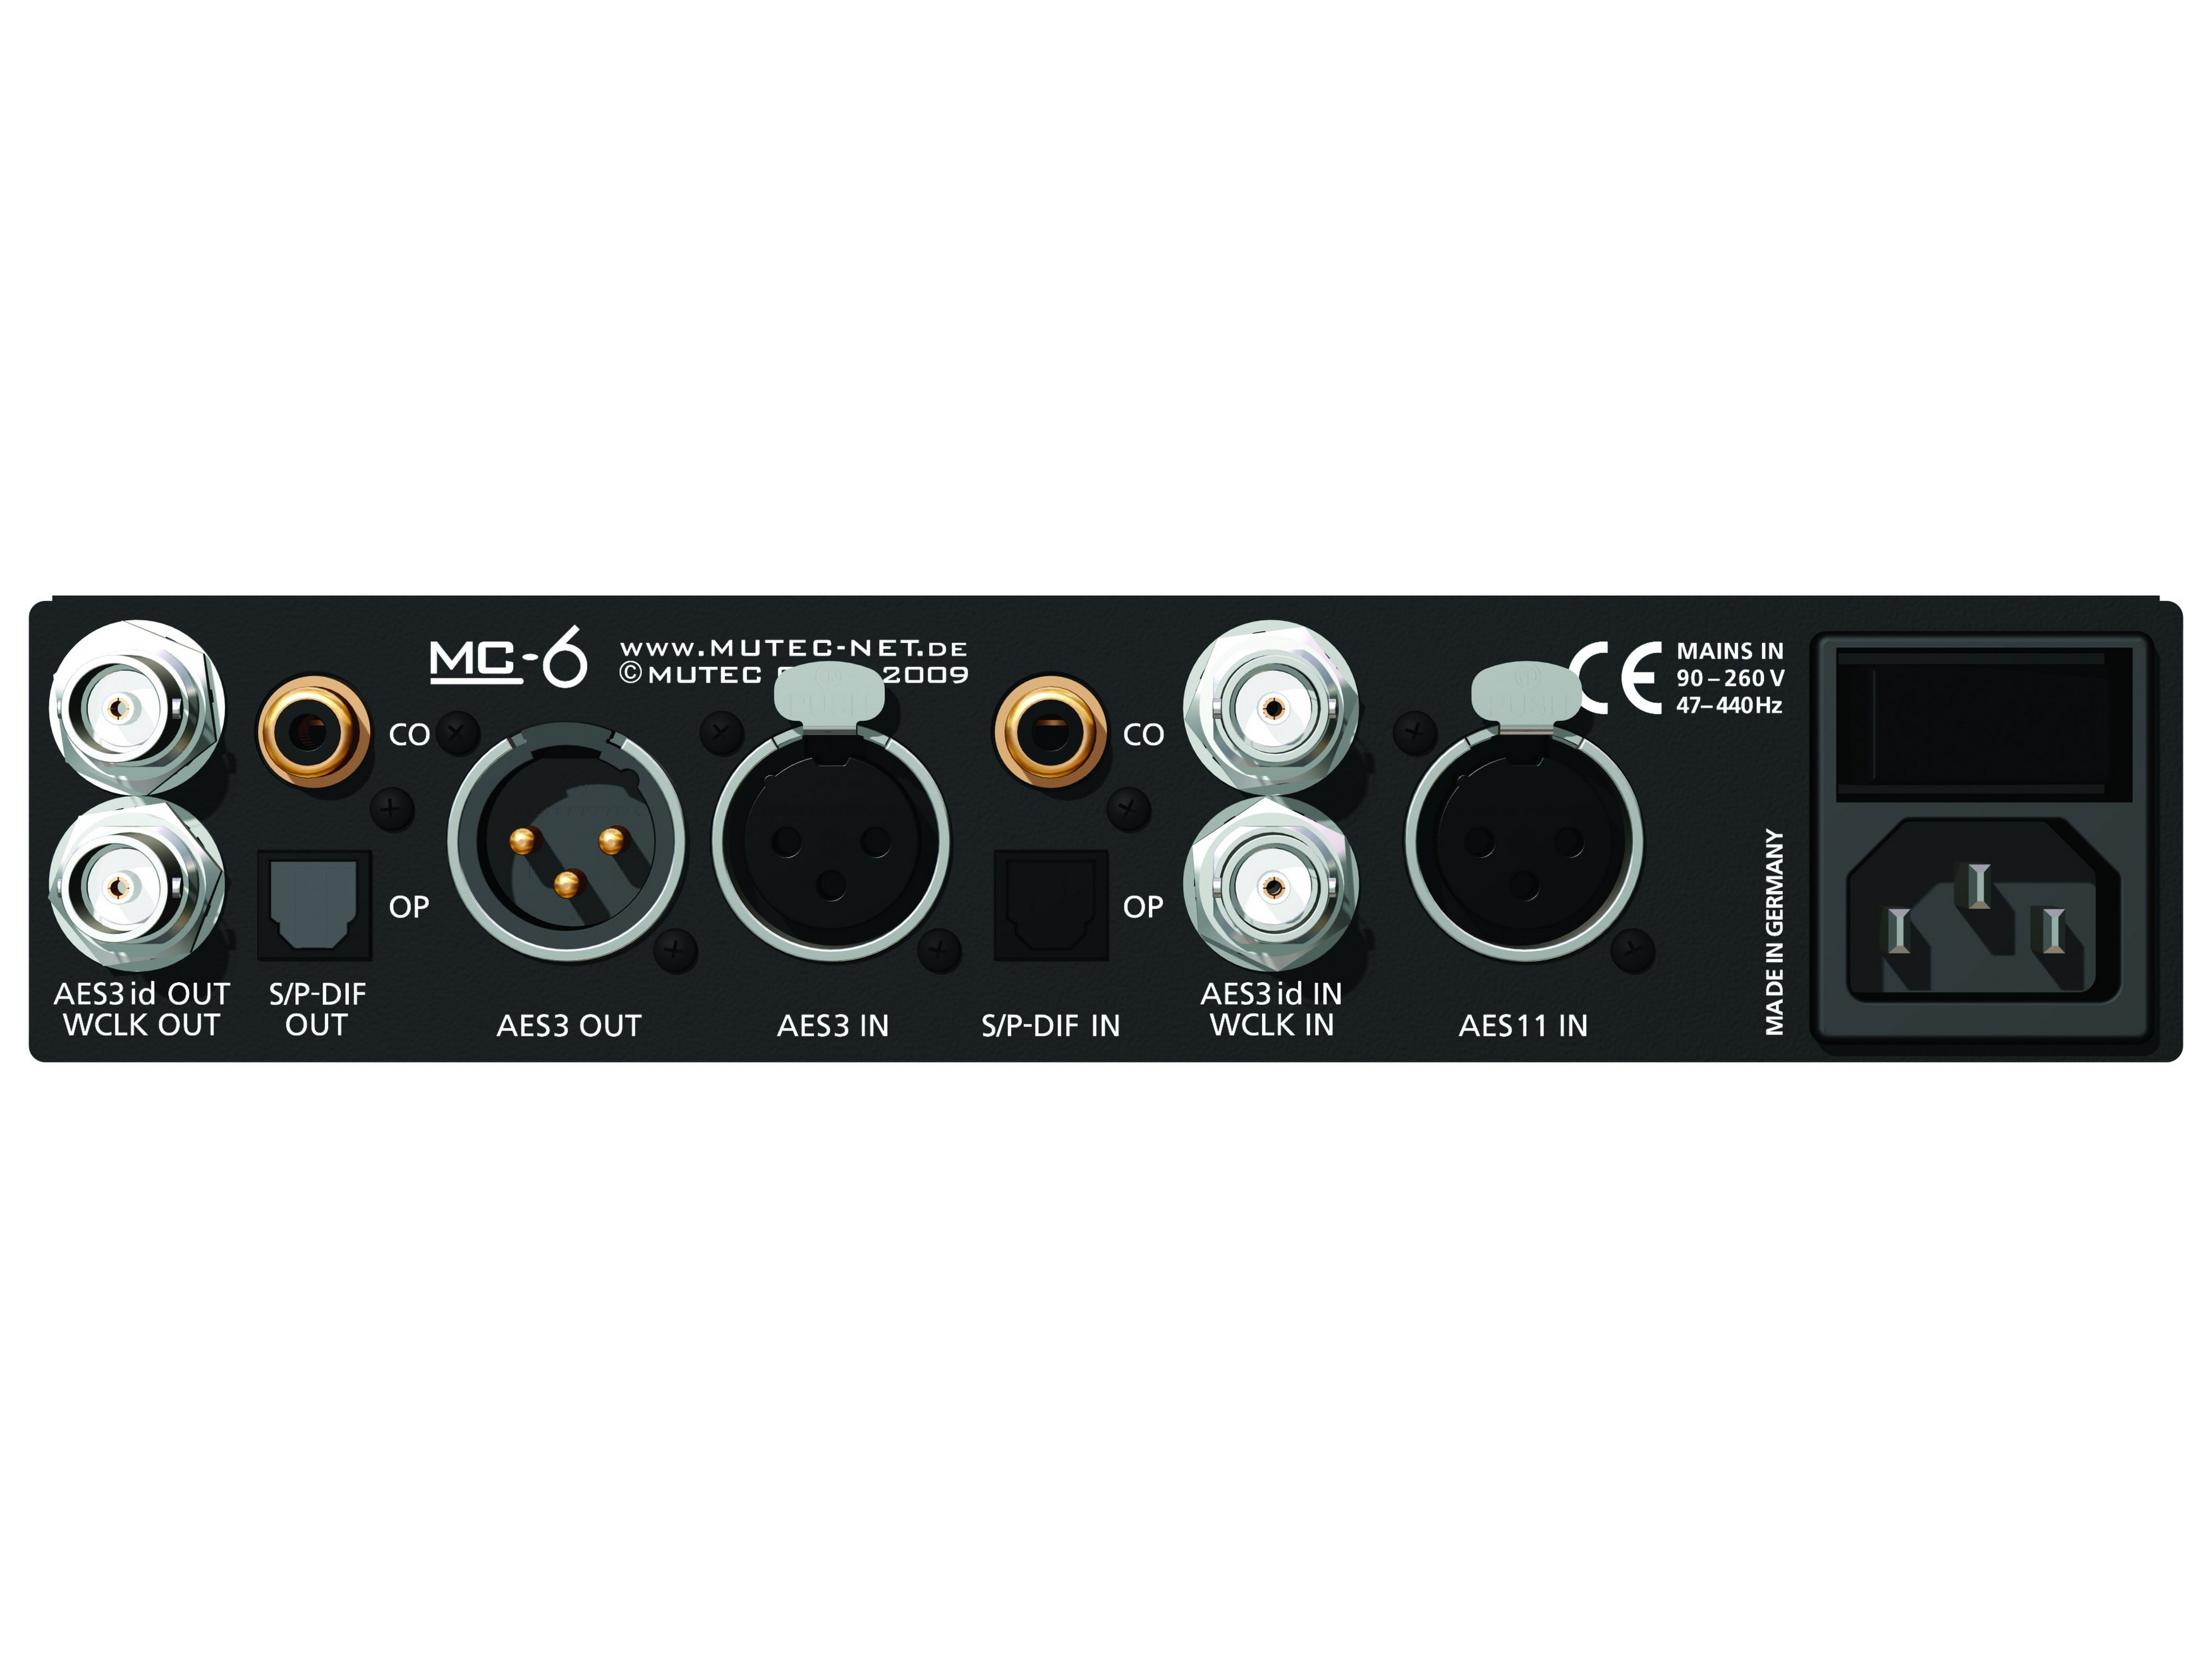 MC-6 Digital Audio format/sampling rate converter (AES3/AES3id/ S/P-DIF) by Mutec